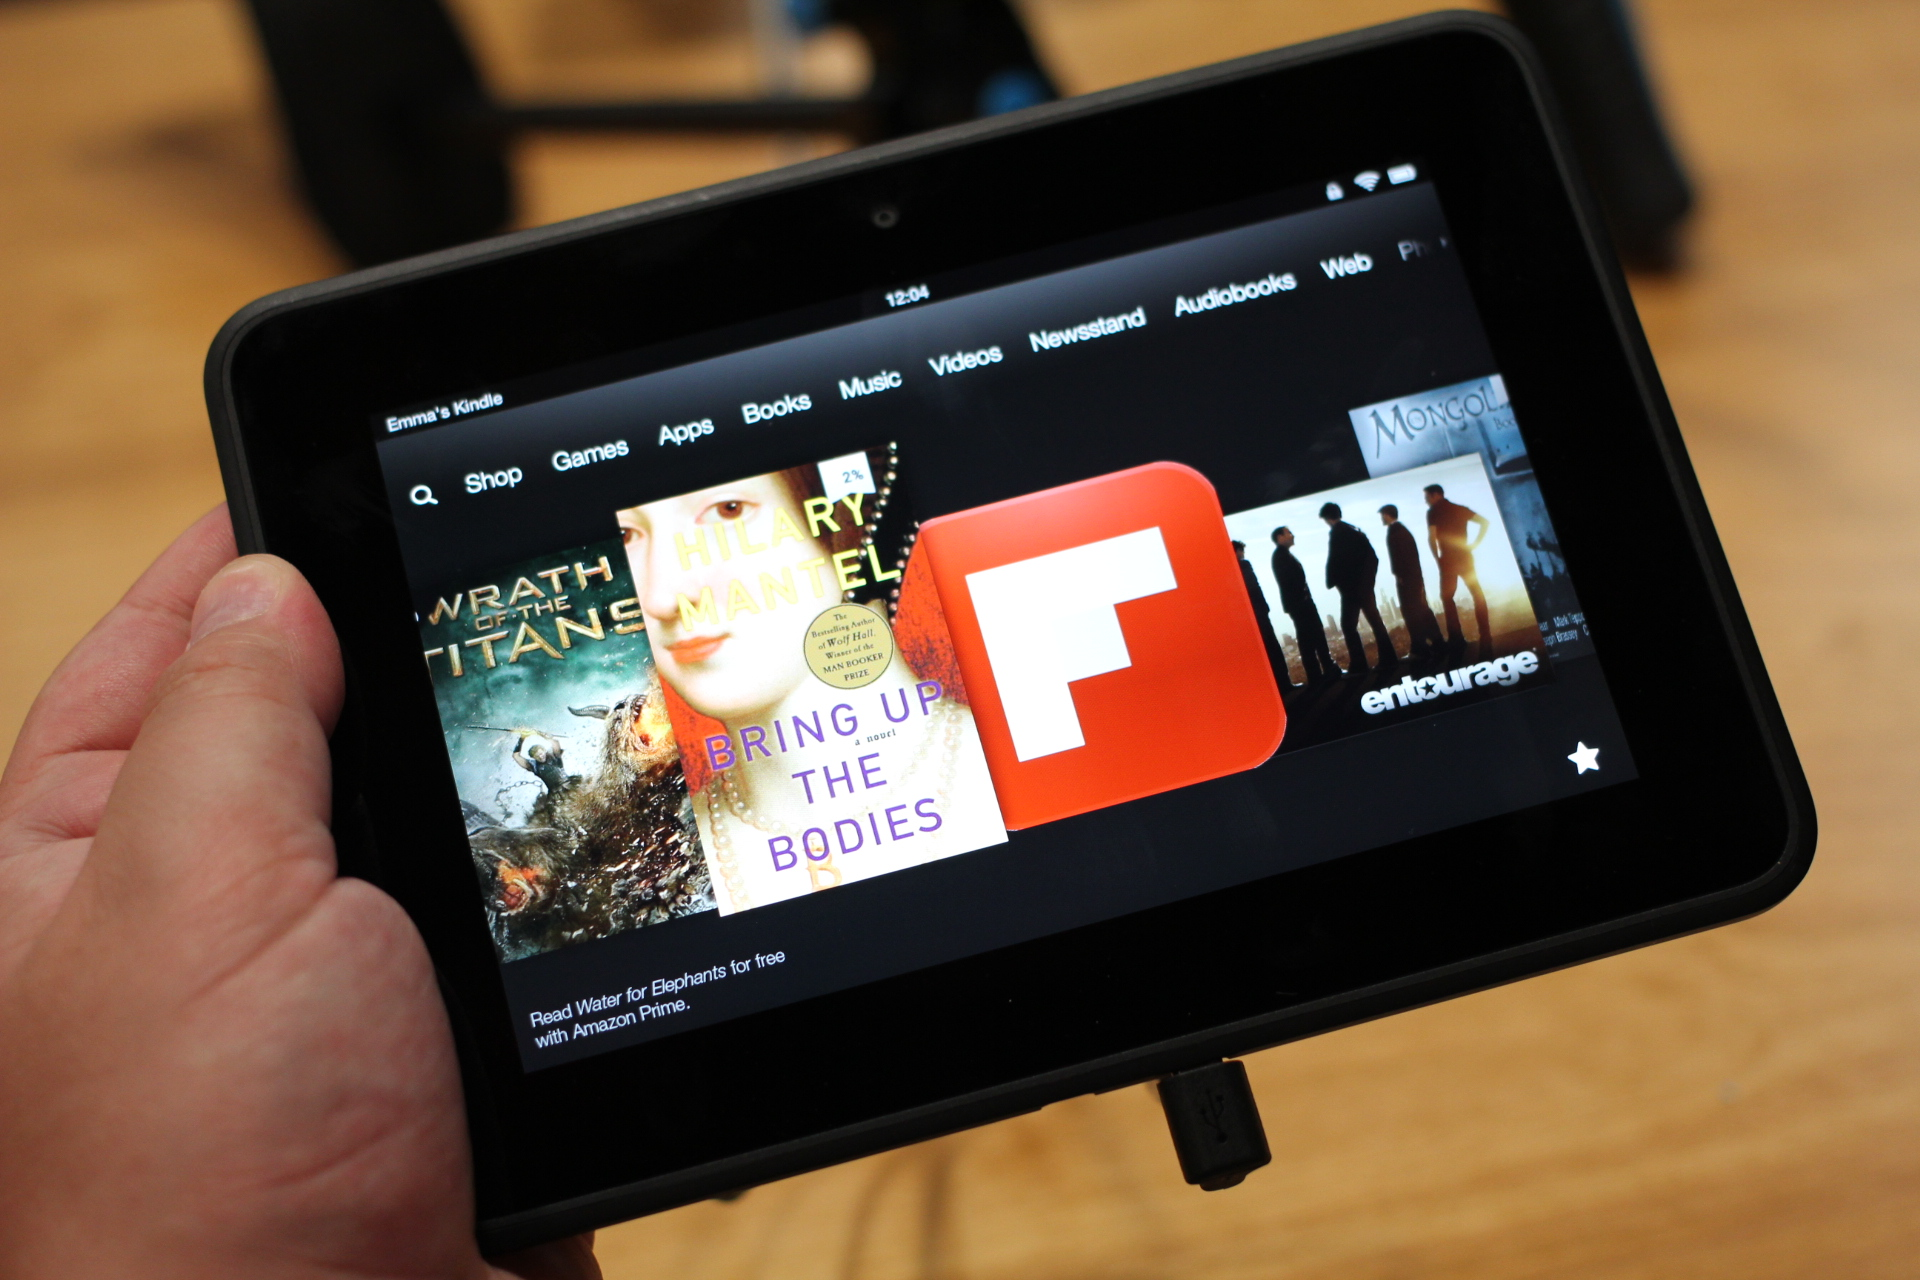 Amazon brings Kindle to Japan: launches Kindle Paperwhite, Kindle Fire and Kindle Fire HD